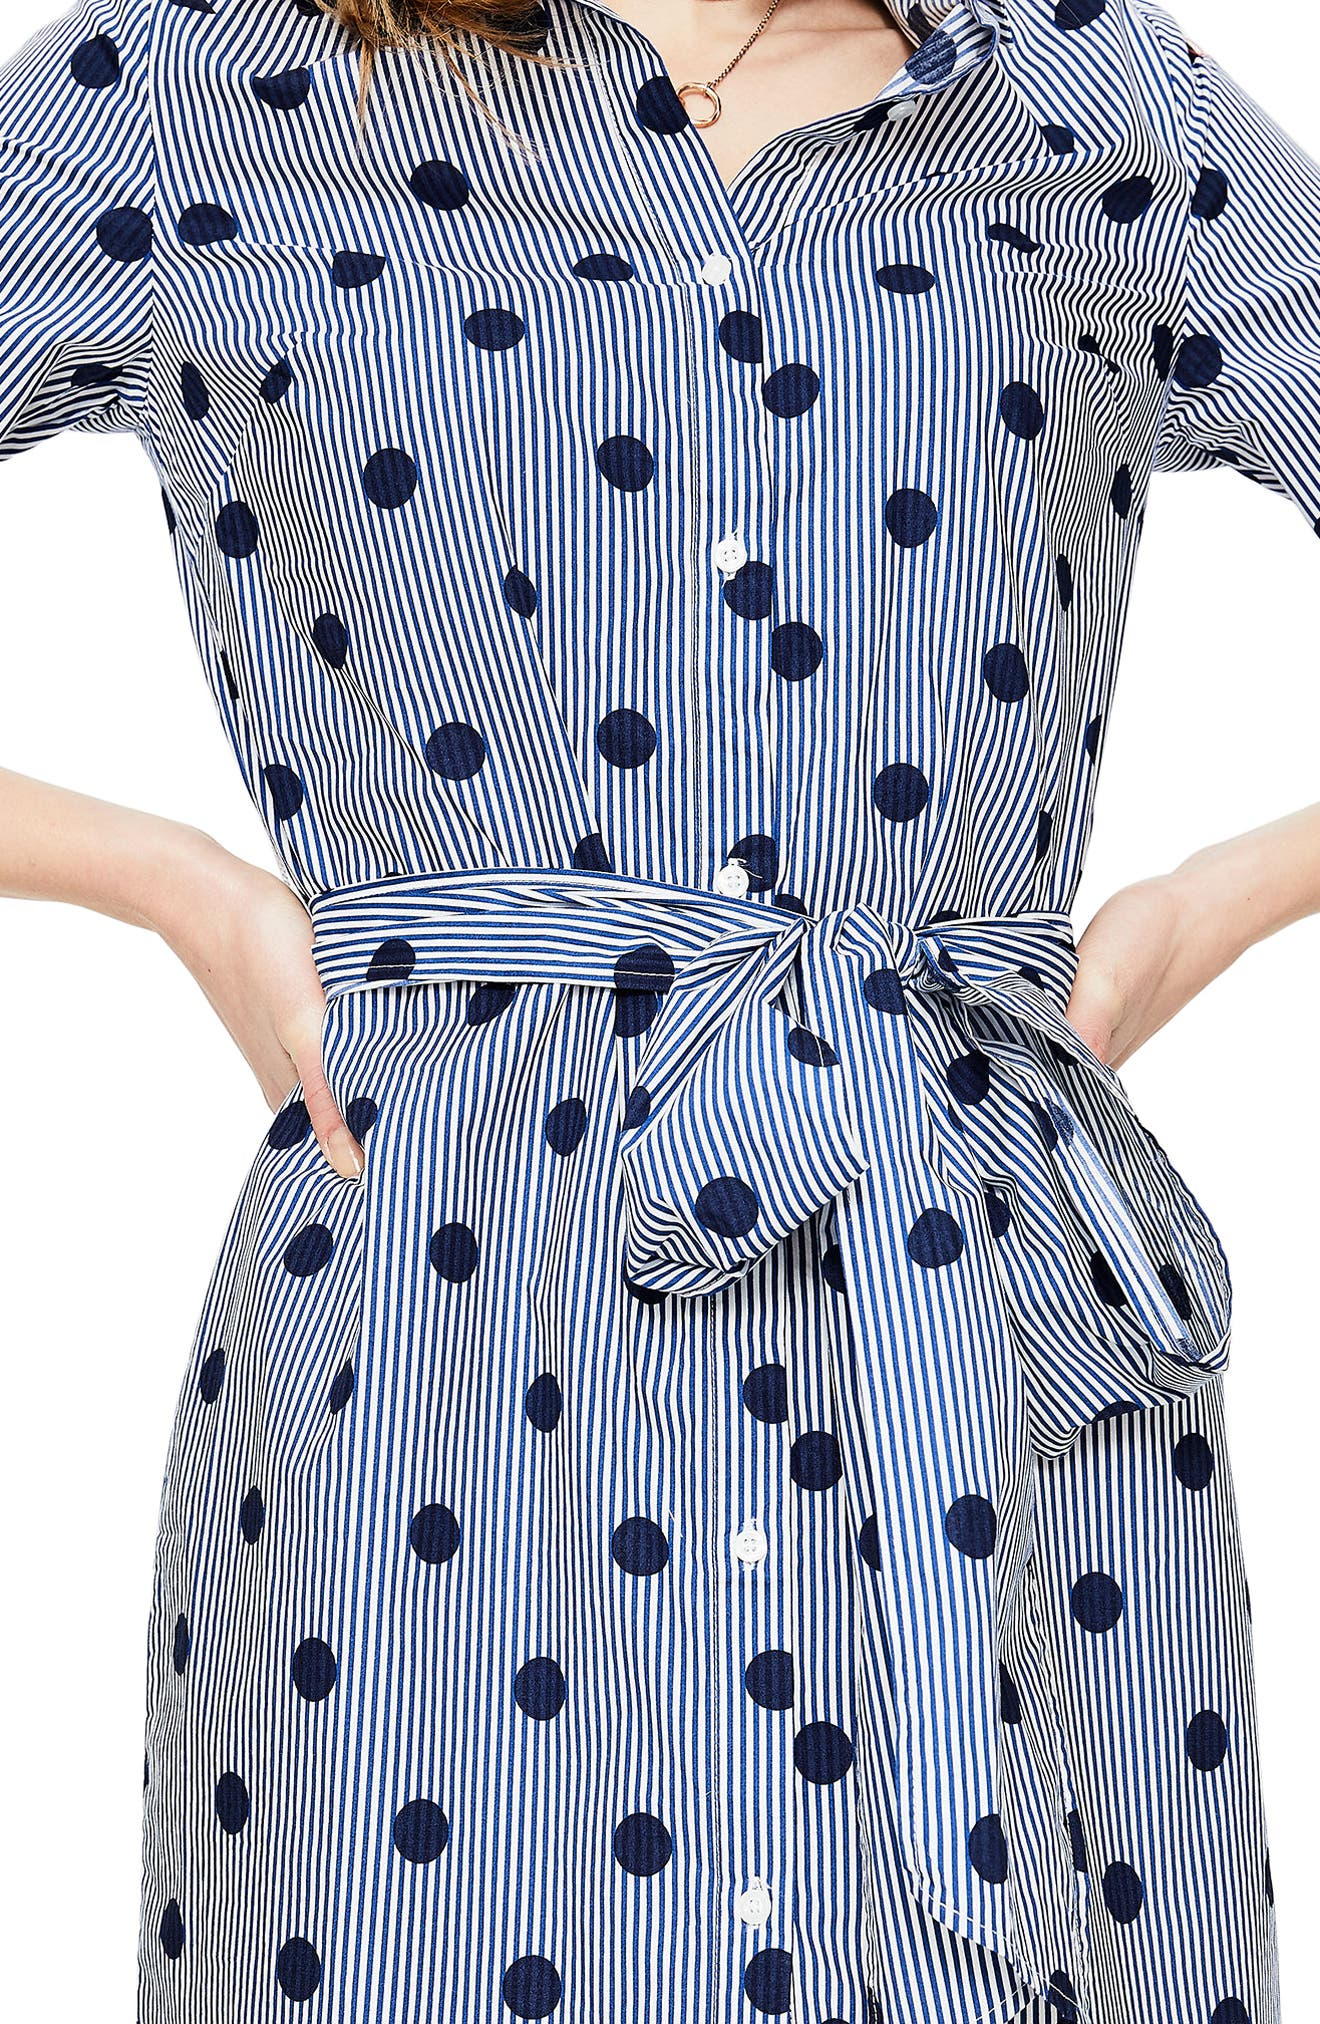 Trend Stripe Dot Cotton Shirtdress,                             Alternate thumbnail 5, color,                             Navy Spot On Stripe